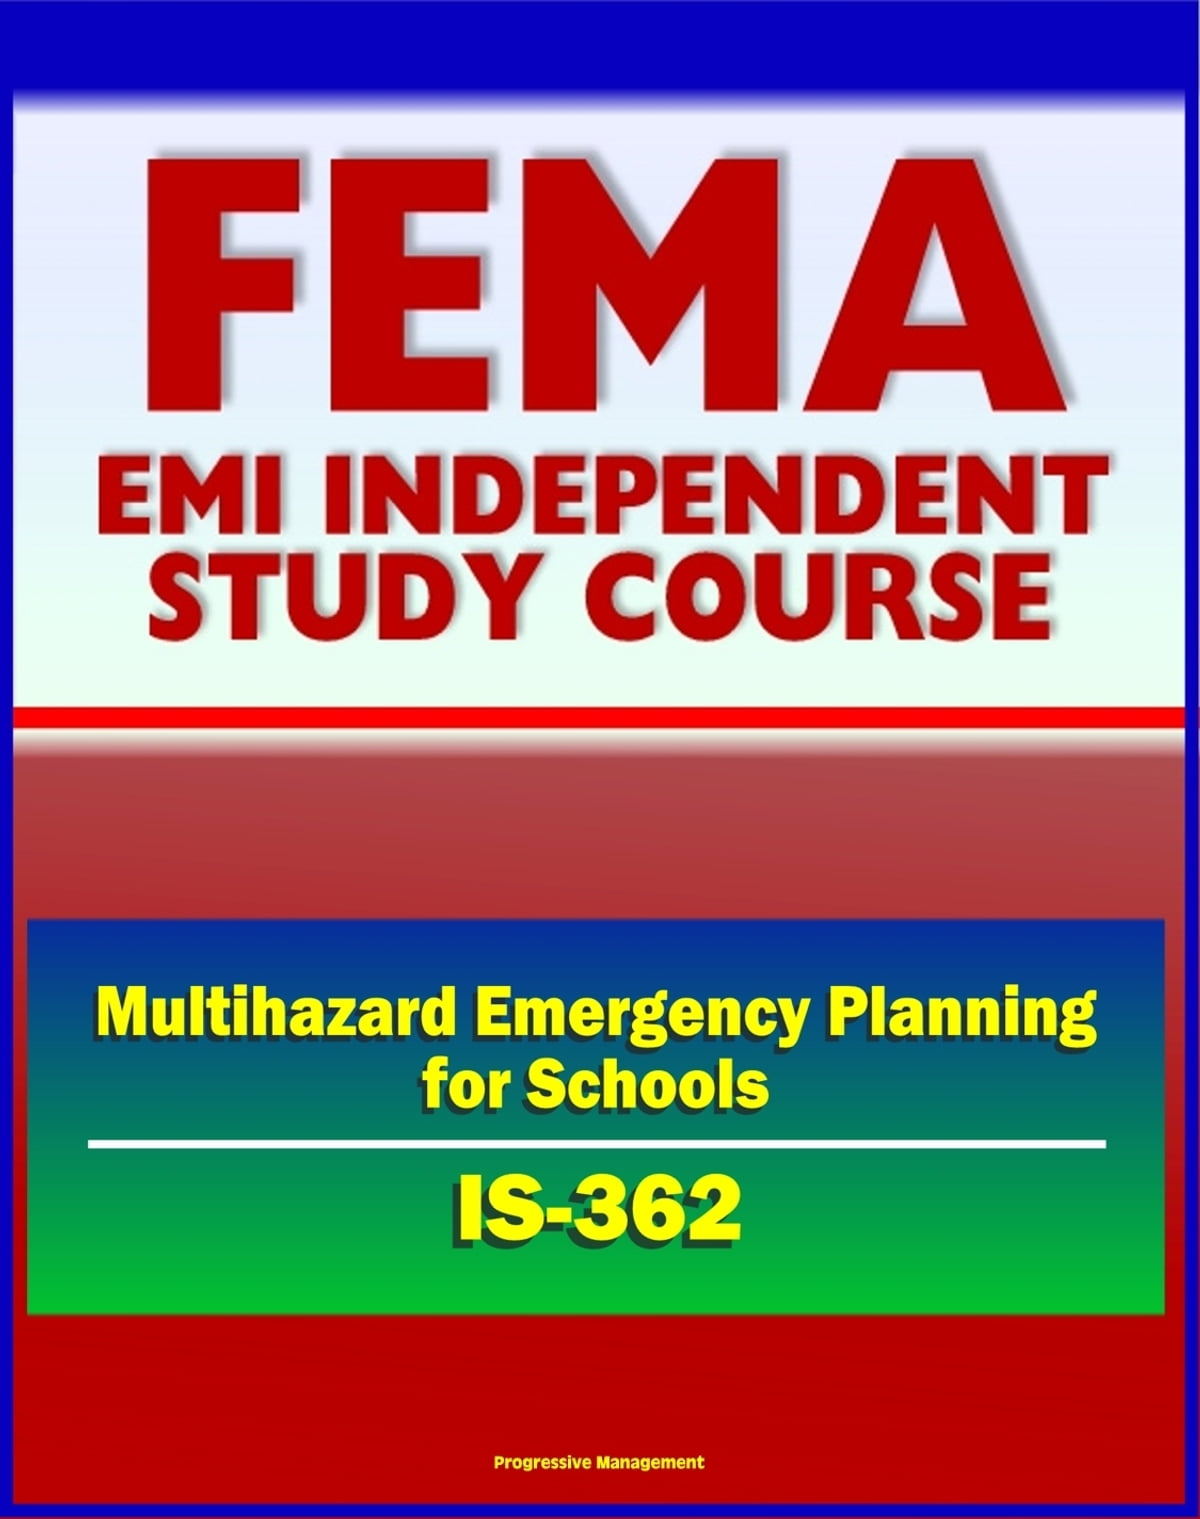 21st Century FEMA Study Course: Multihazard Emergency Planning for Schools  (IS-362) - Crisis Intervention, ICS, Testing and Drills, Drill Procedures